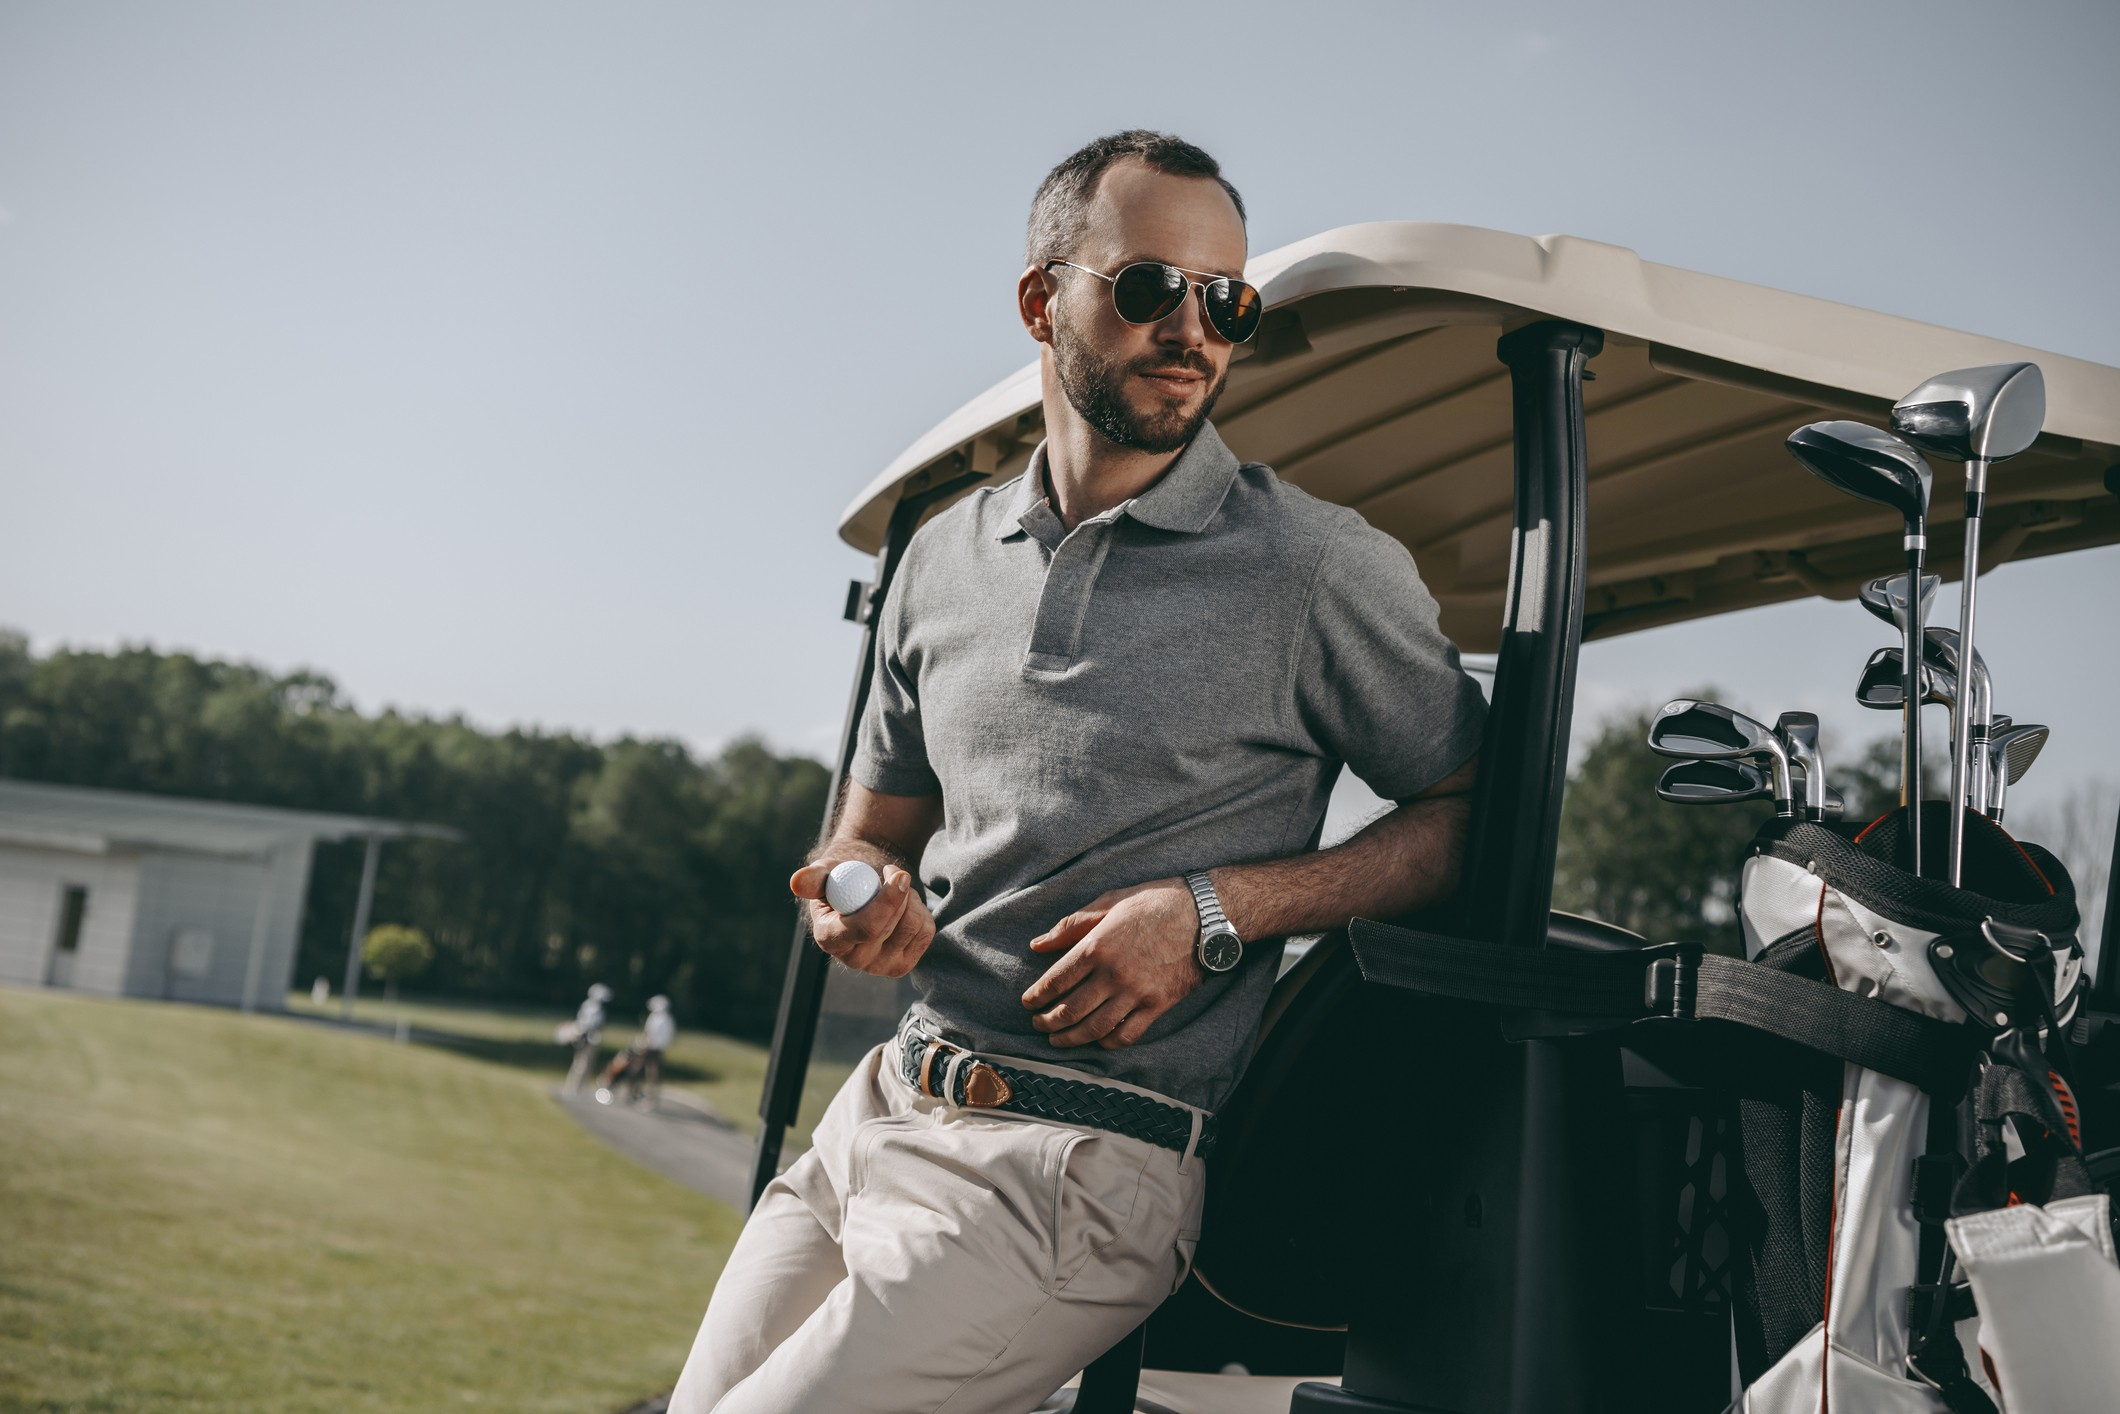 Stylish golfer